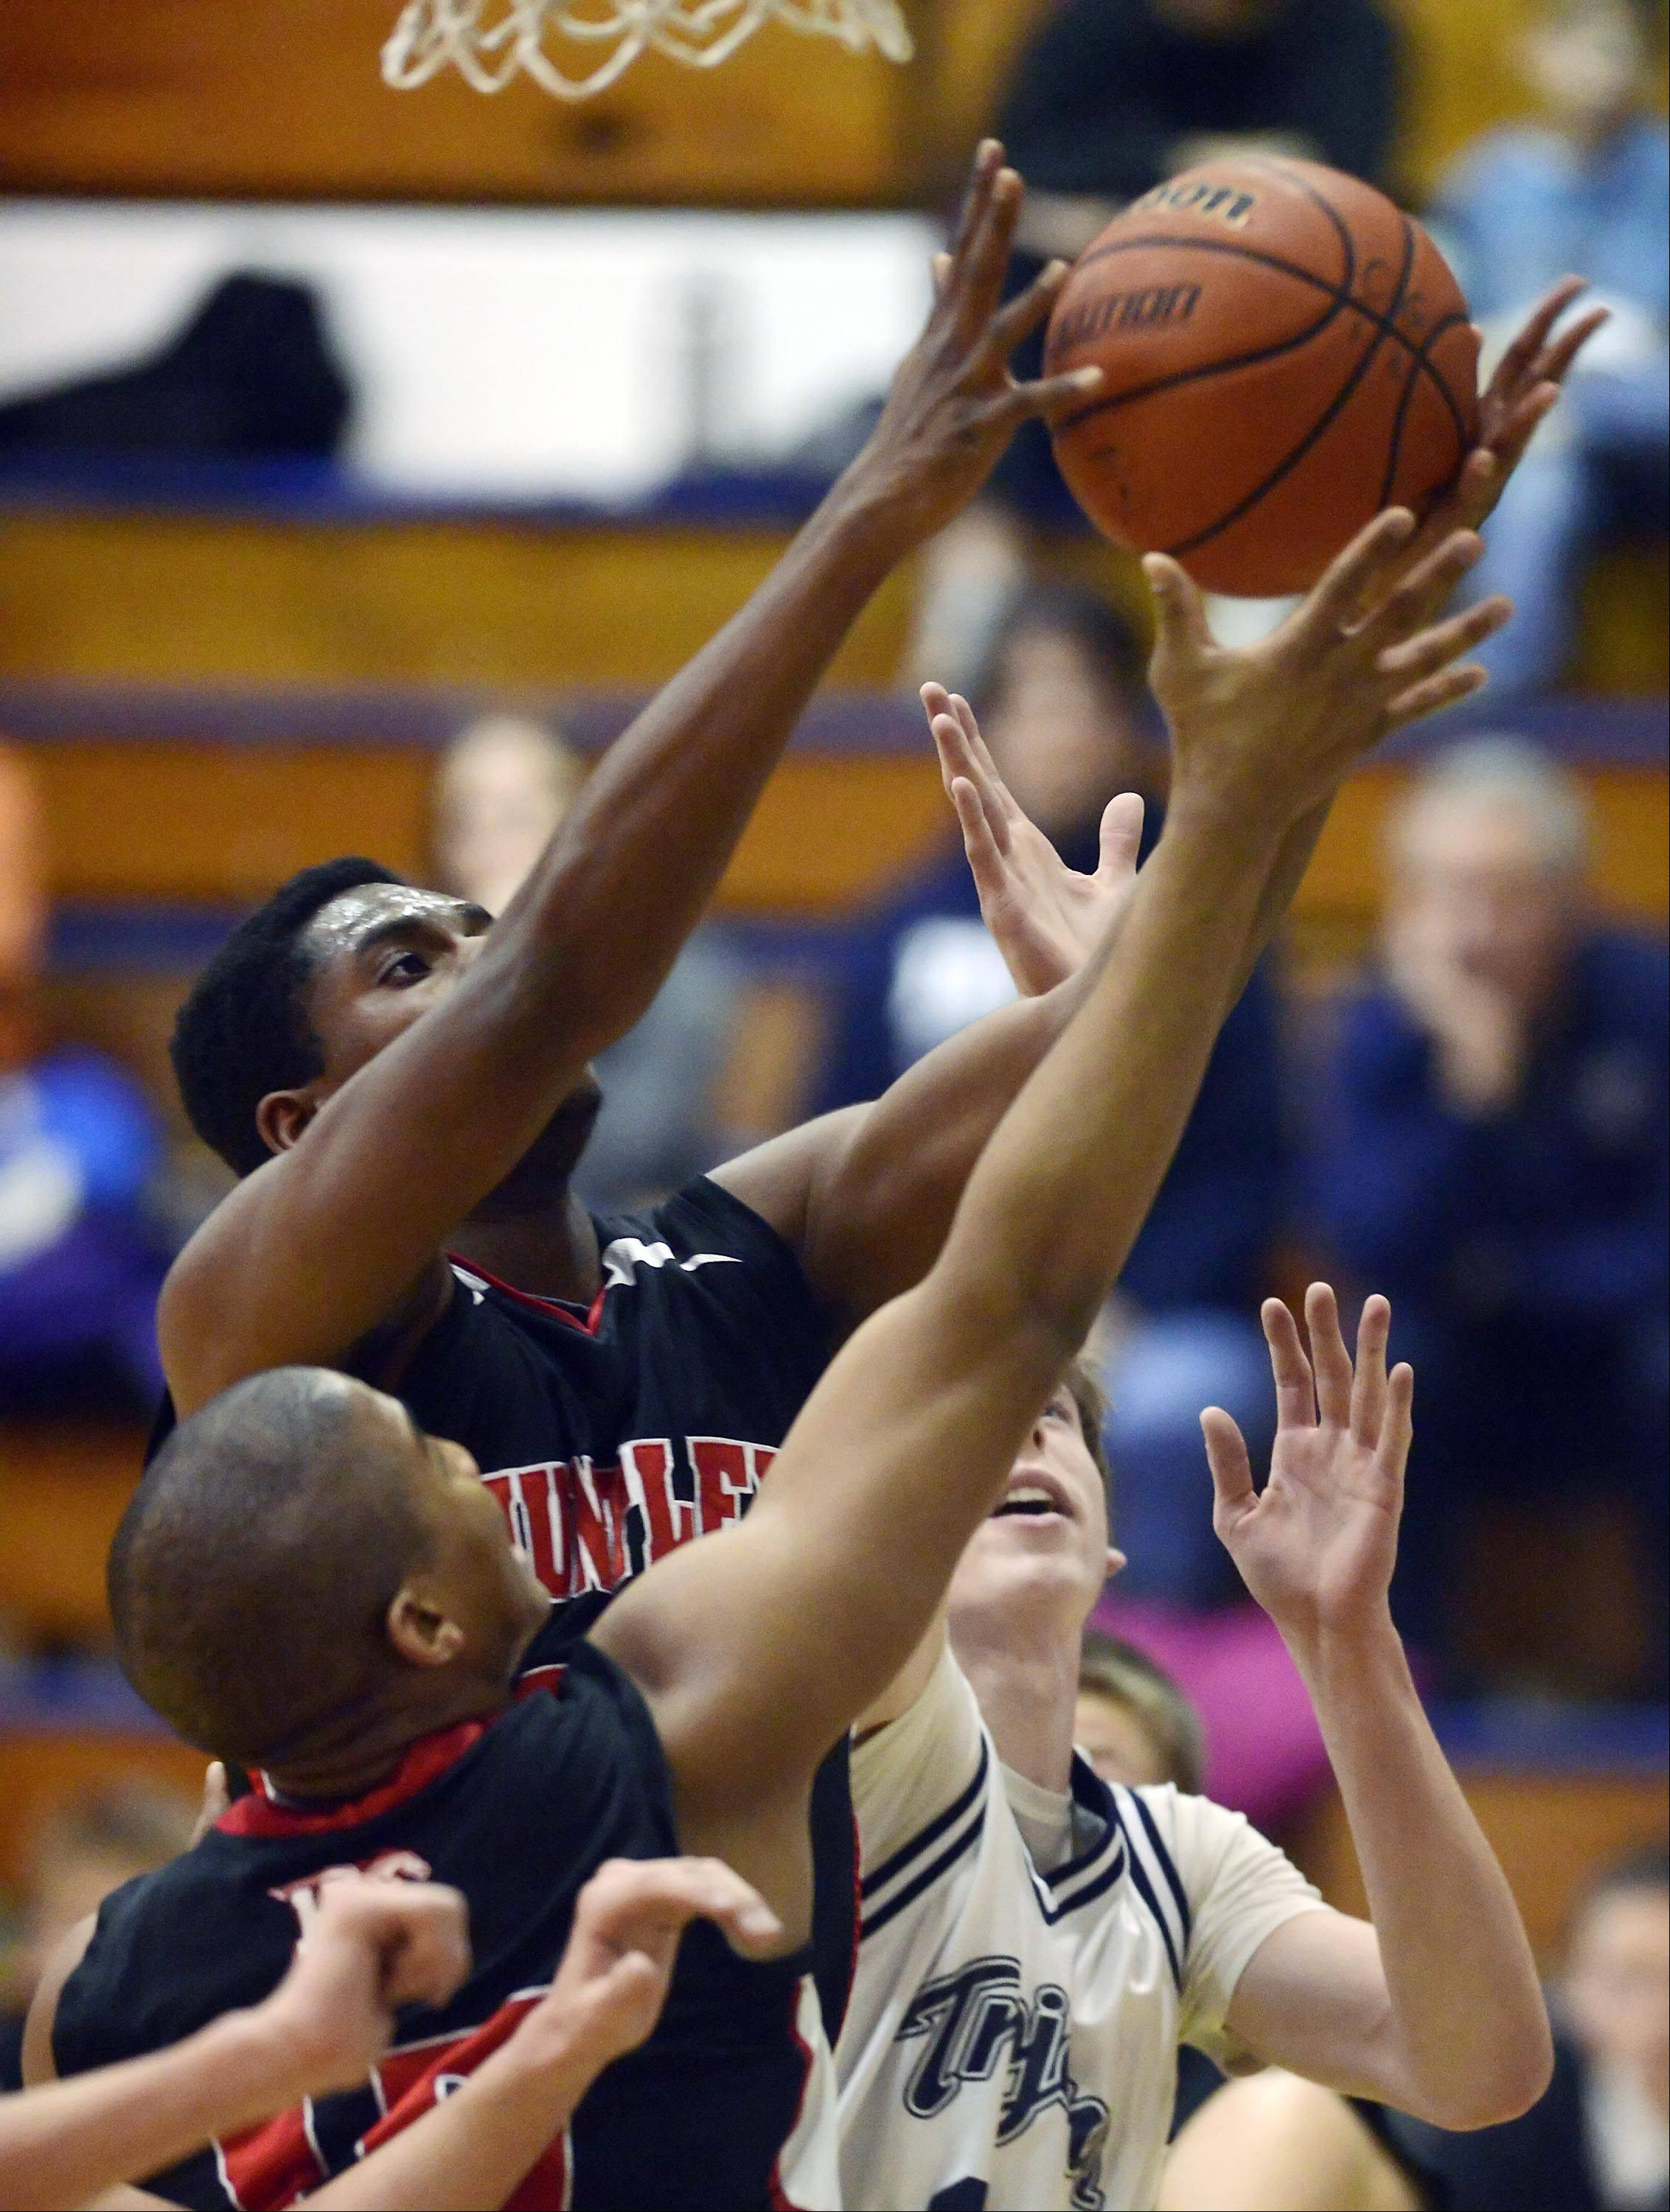 Huntley's Amanze Egekeze takes a rebound against teammate Bryce Only and Cary-Grove's Dean Lee .